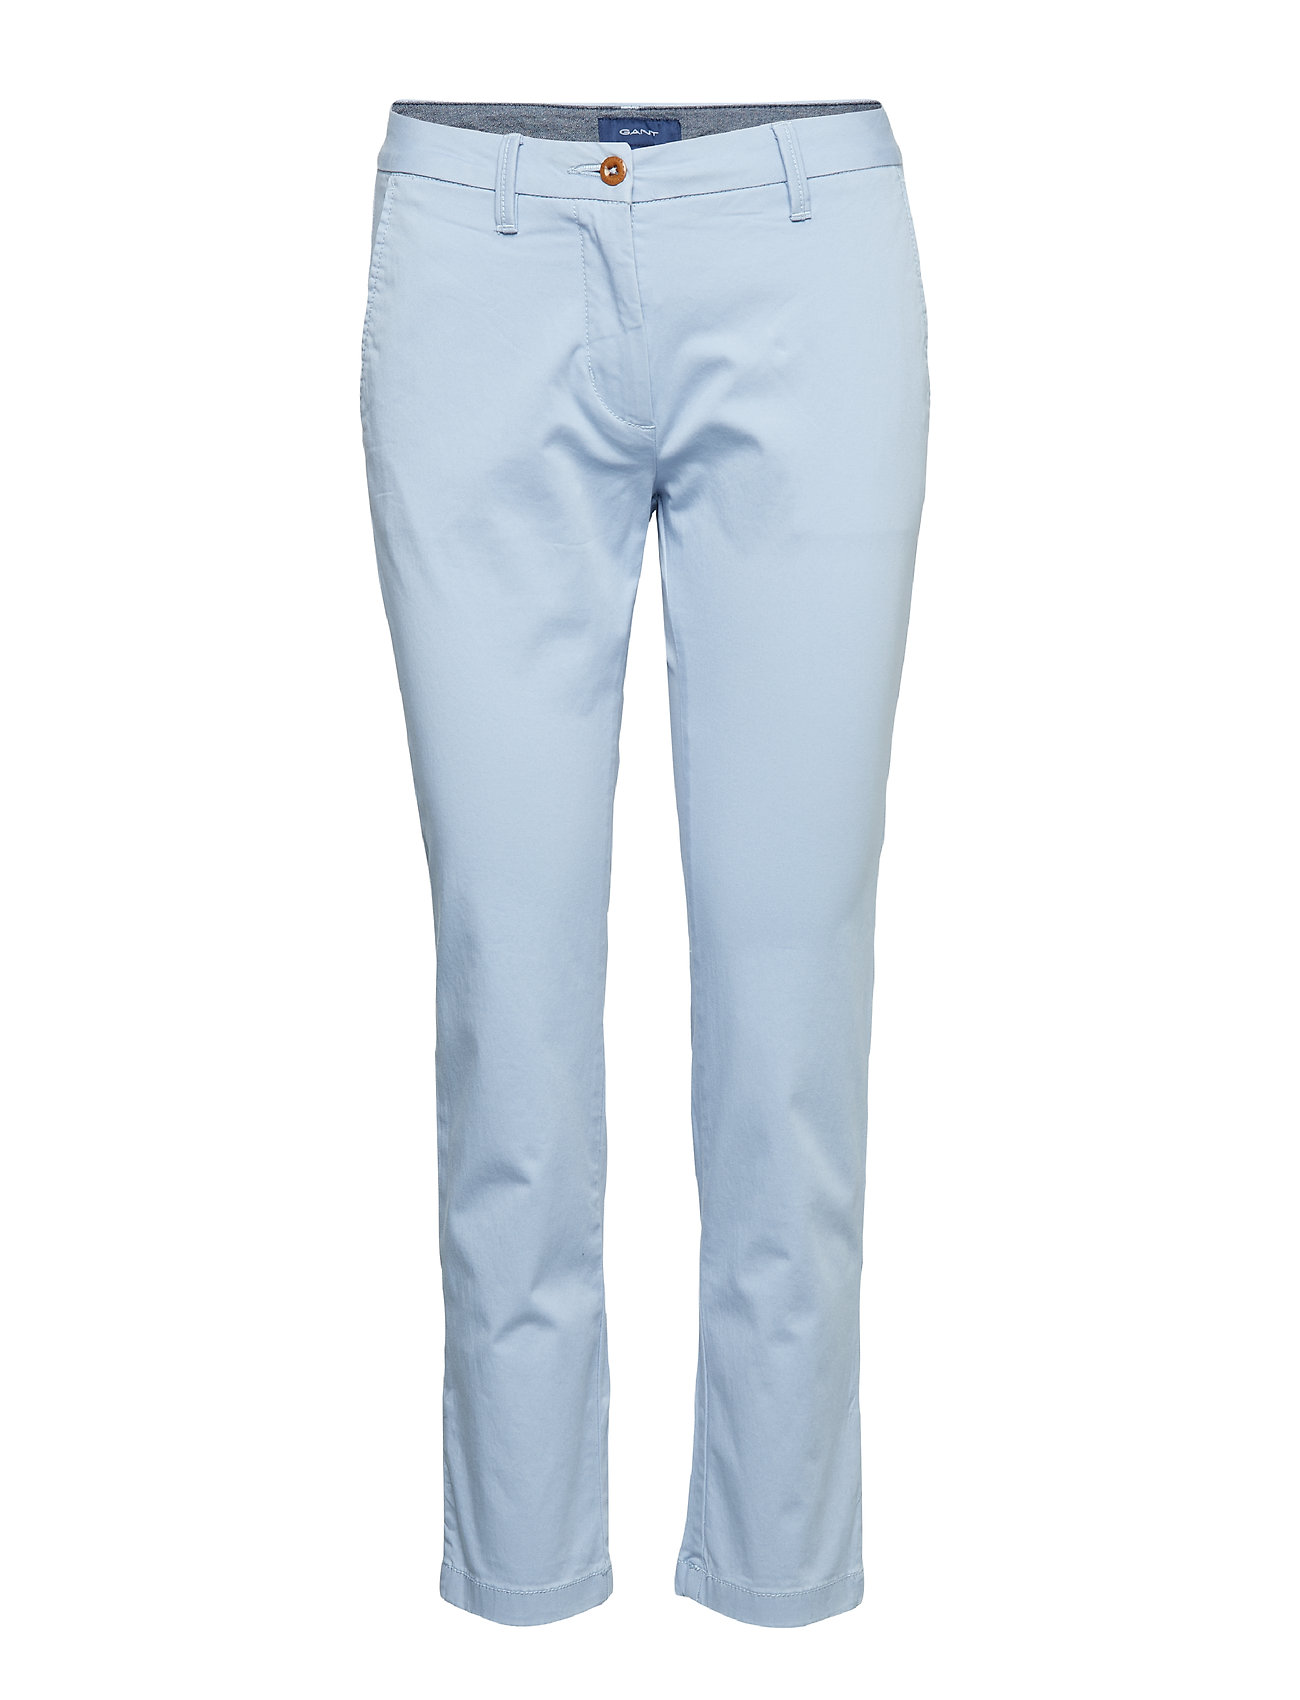 GANT CLASSIC CROPPED CHINO - HAMPTONS BLUE